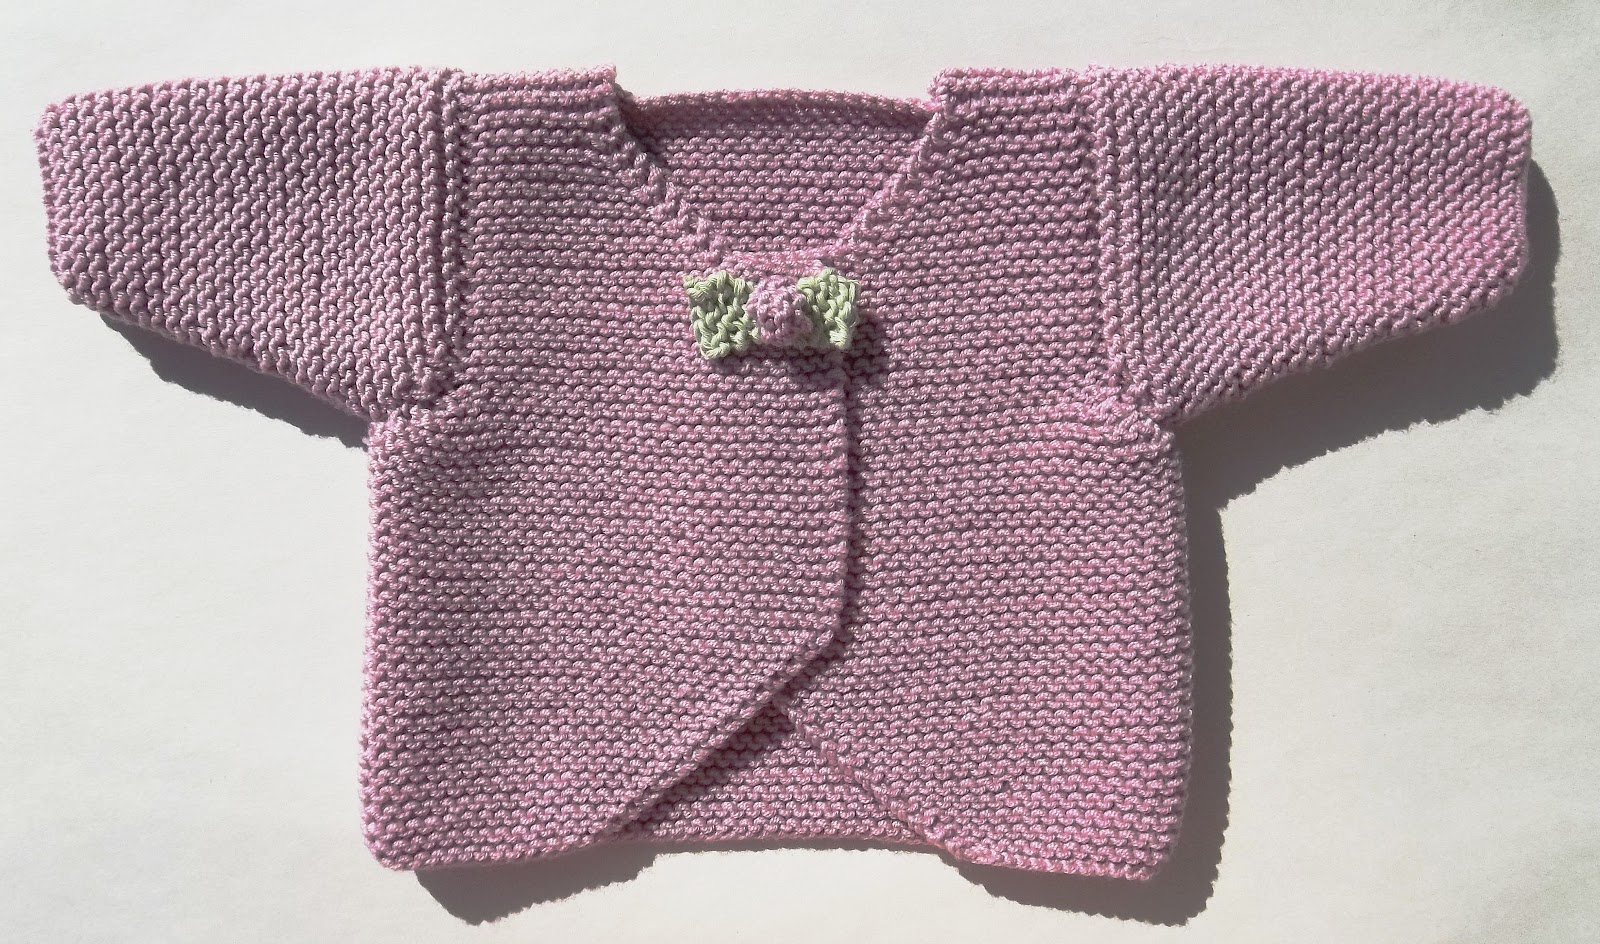 Hand Knitting Patterns For Babies : Baby Rosebud Cardigan Hand Knitting Pattern